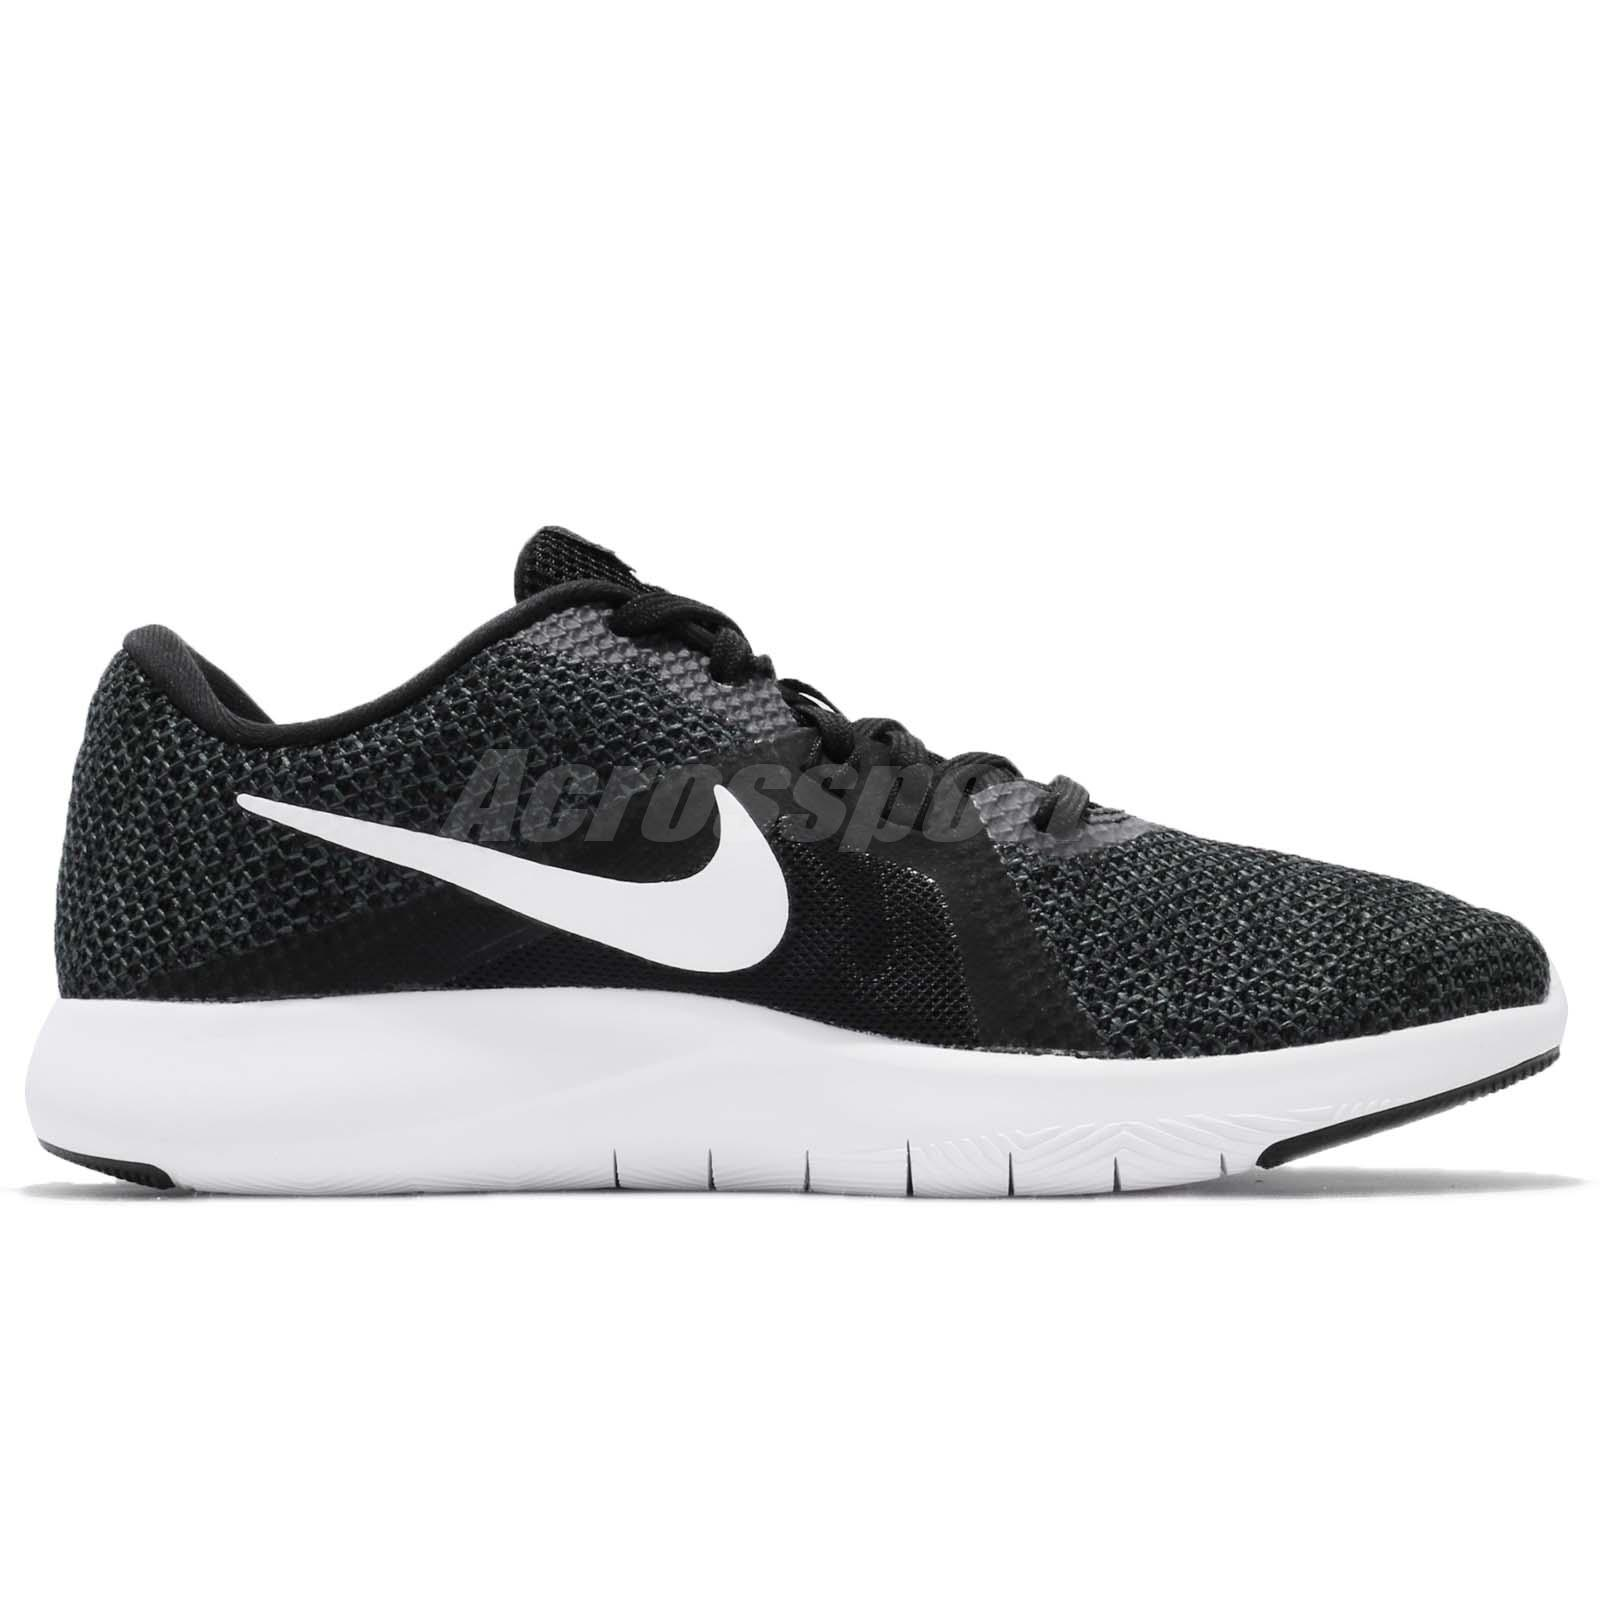 6ed43d56b05f8 Wmns Nike Flex Trainer 8 VIII Black White Women Cross Training Shoes ...